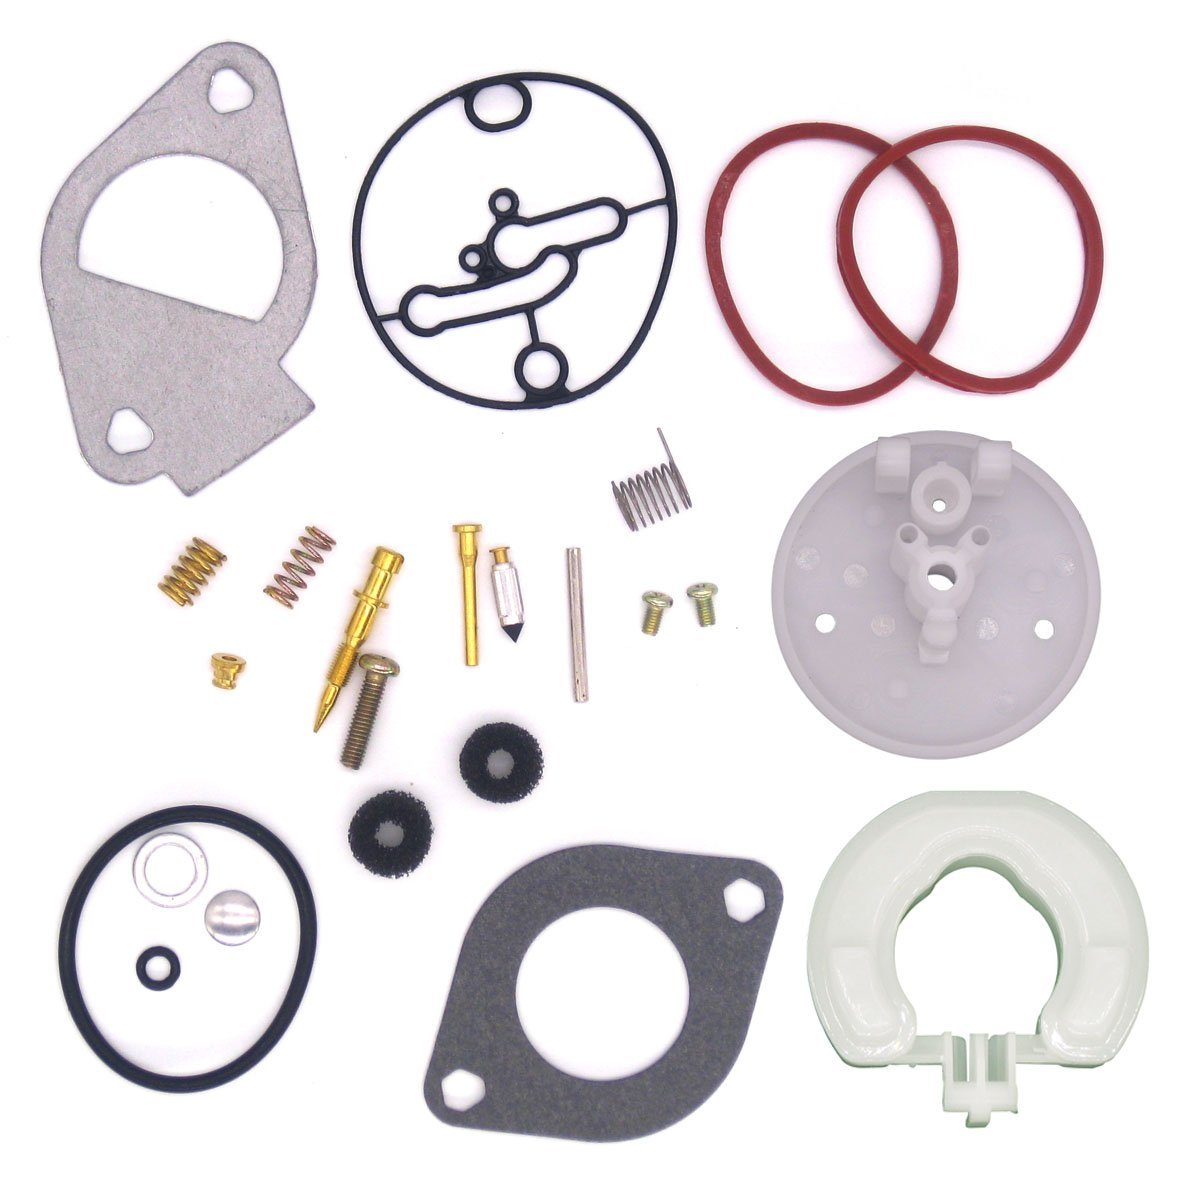 Atoparts Fits Briggs & Stratton Carburetor Rebuild Kit Master Overhaul Nikki Carbs 796184 Replaces 698787 790032